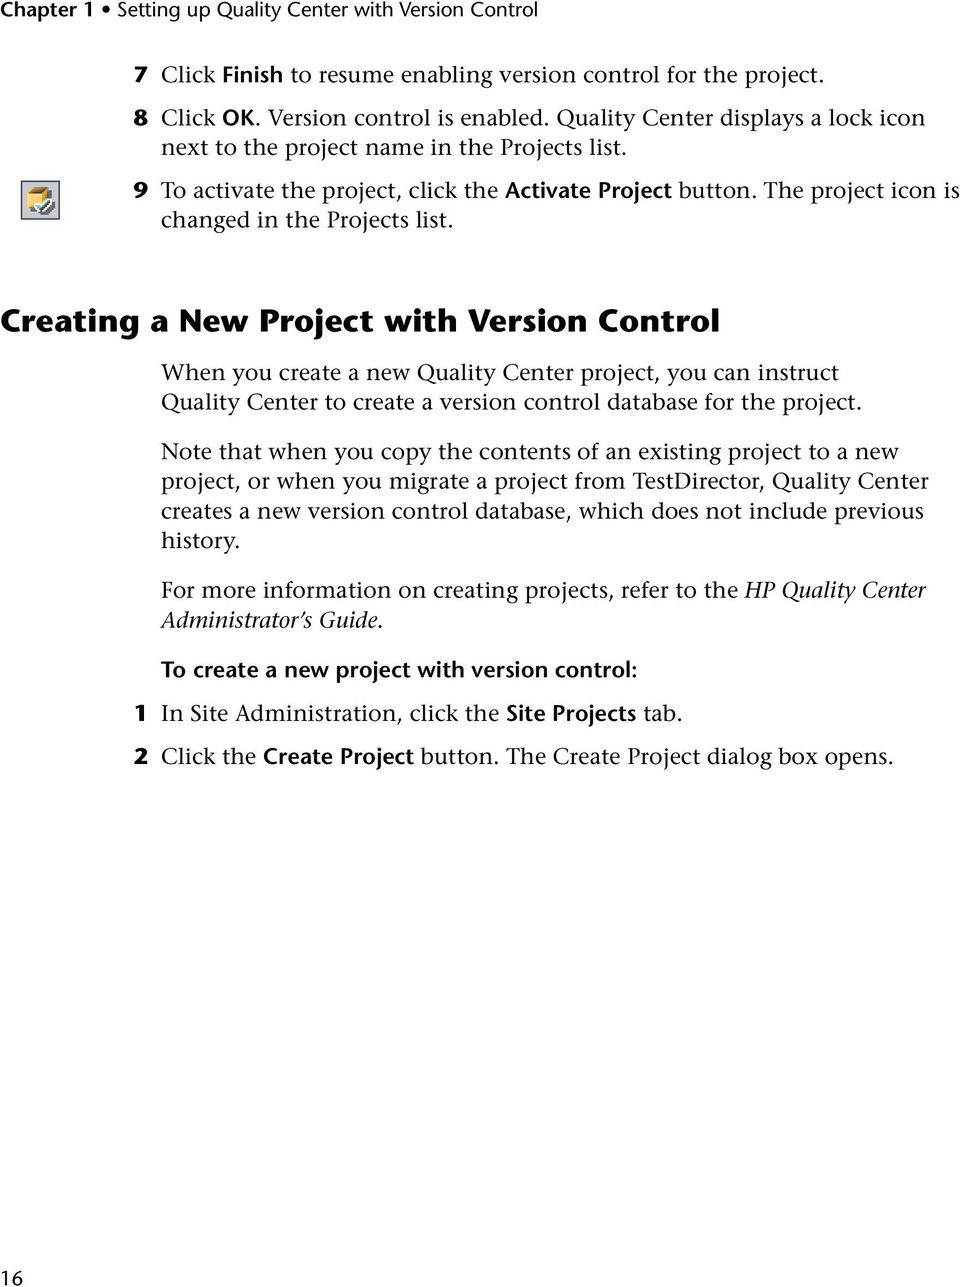 Creating a New Project with Version Control When you create a new Quality Center project, you can instruct Quality Center to create a version control database for the project.